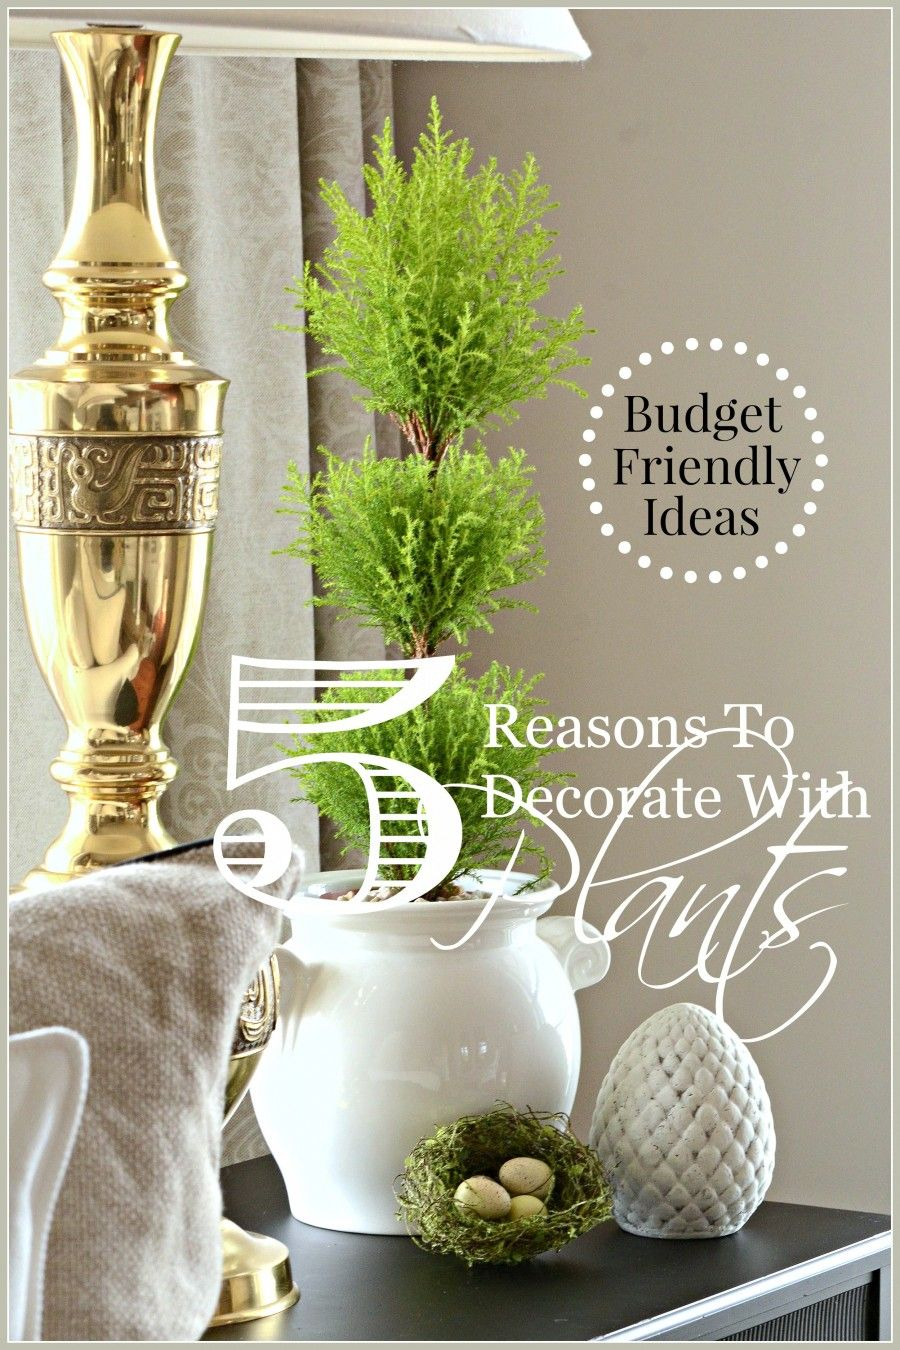 Budget Friendly Diy Home Decorating Ideas Tutorials 2017: 5 REASONS TO DECORATE WITH PLANTS... BUDGET FRIENDLY DECOR